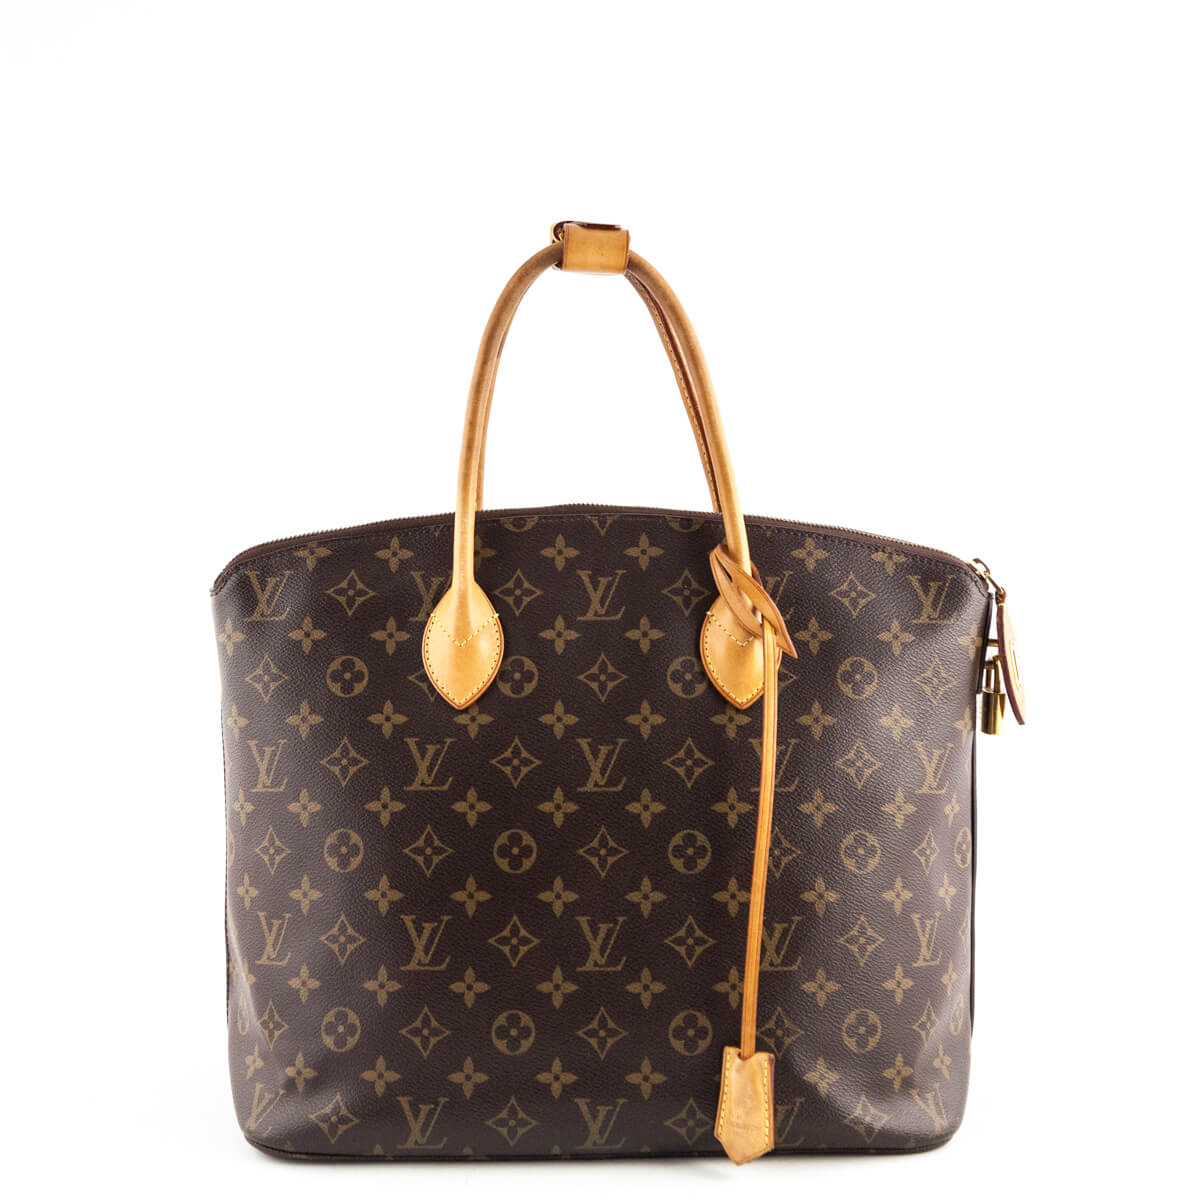 Louis Vuitton Monogram Lockit PM - LOVE that BAG - Preowned Authentic  Designer Handbags ... b3c8316211